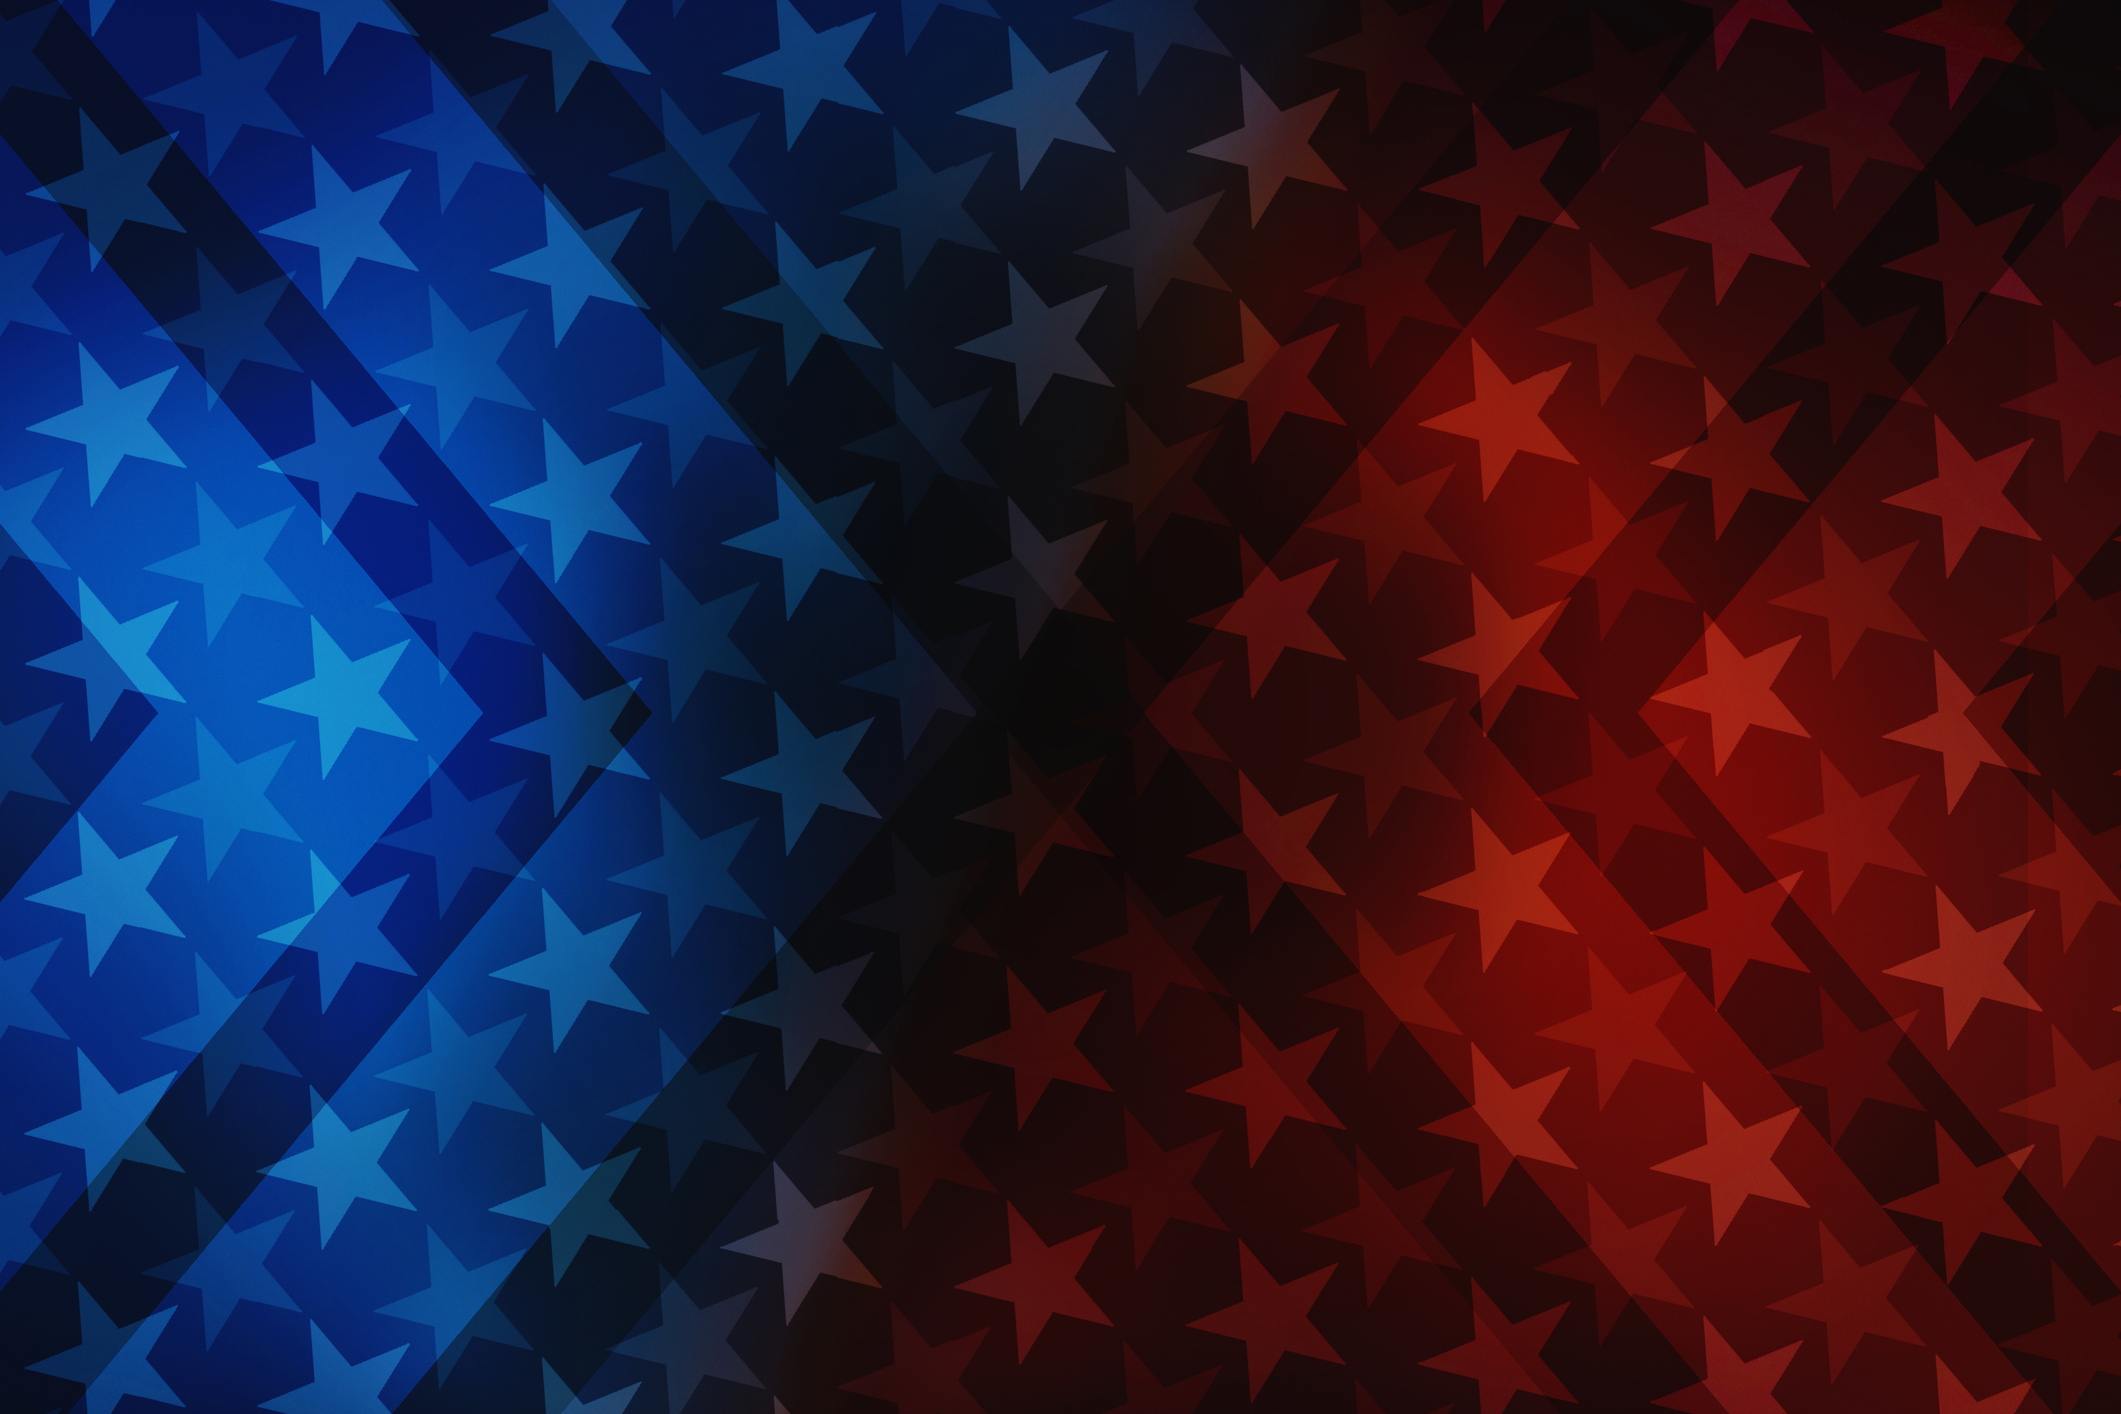 USA stars and stripes illustration background